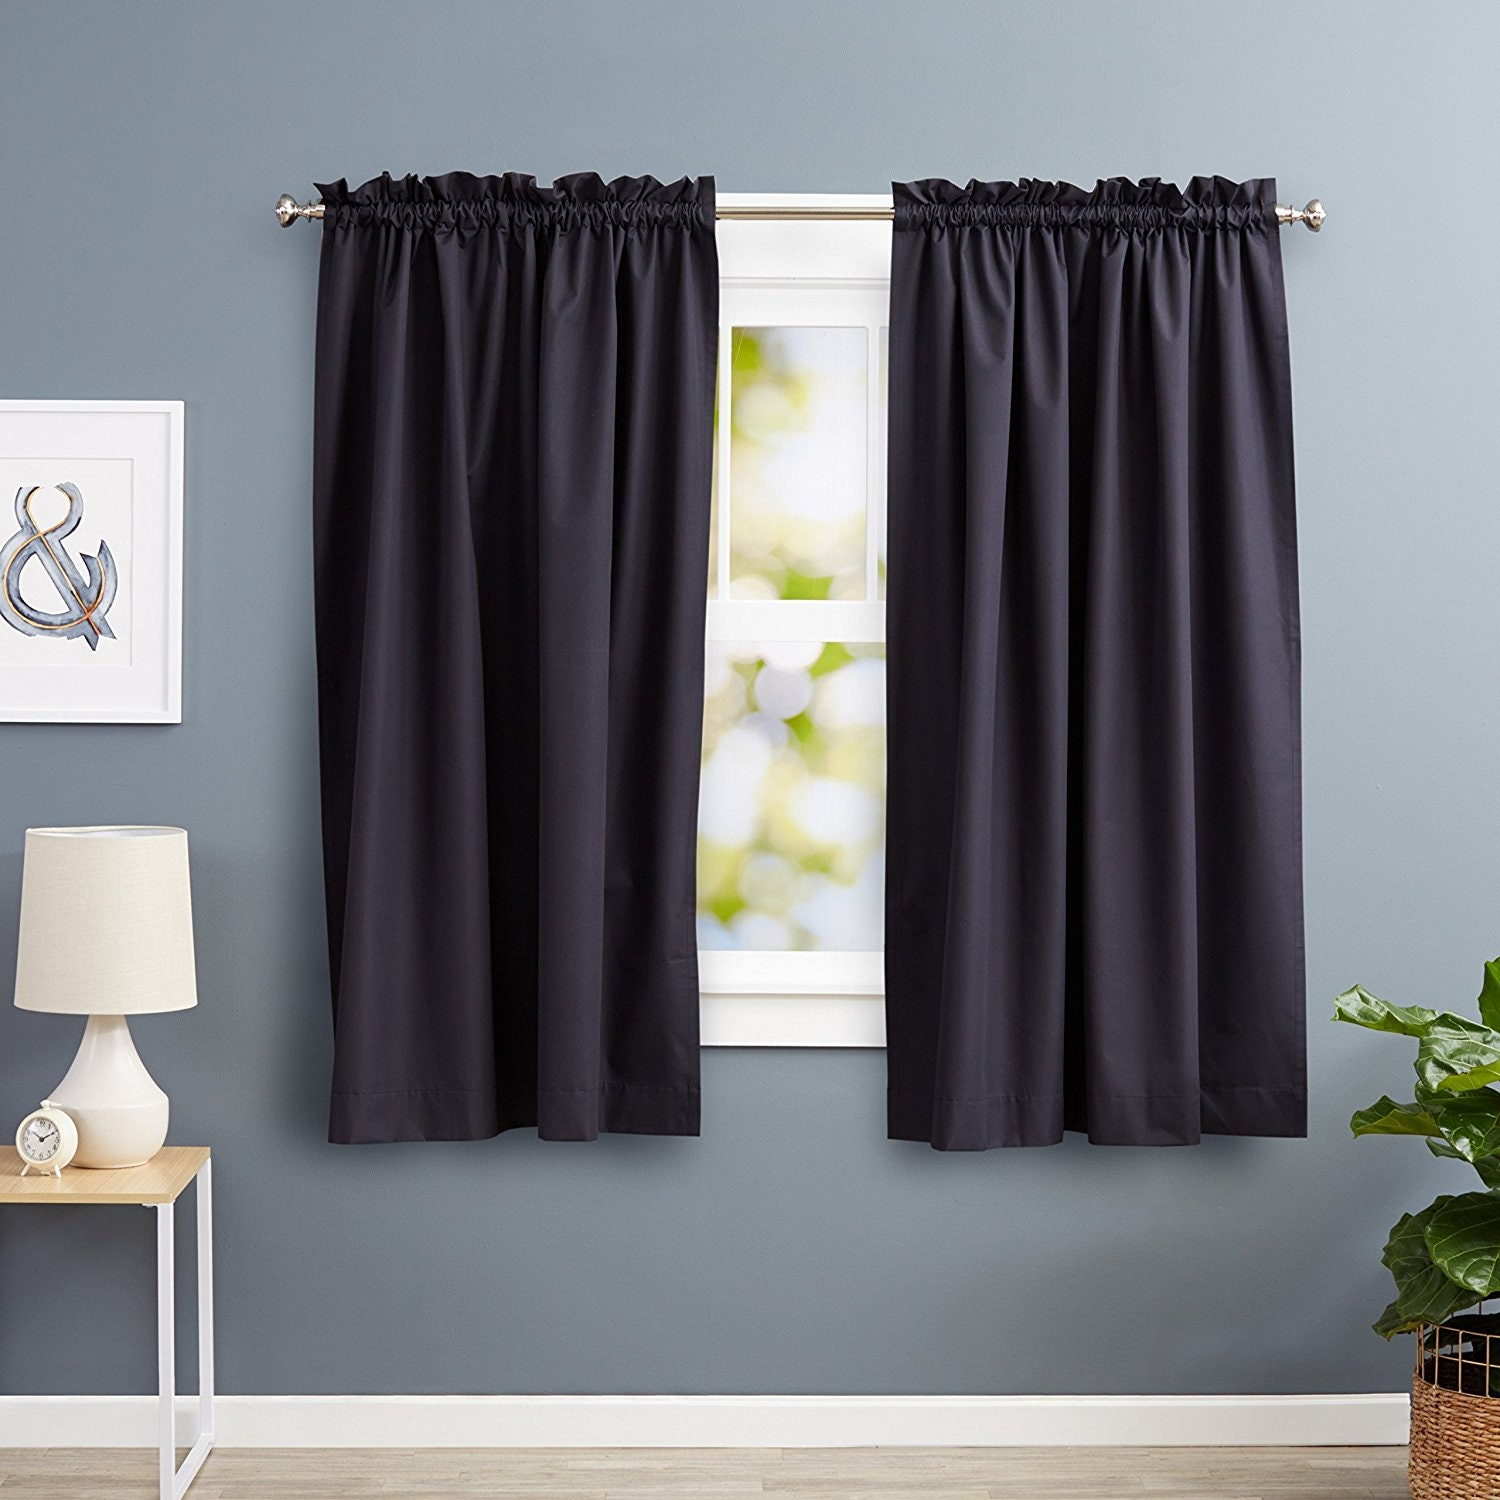 images hd curtains blackout treatment insulated amazon curtain